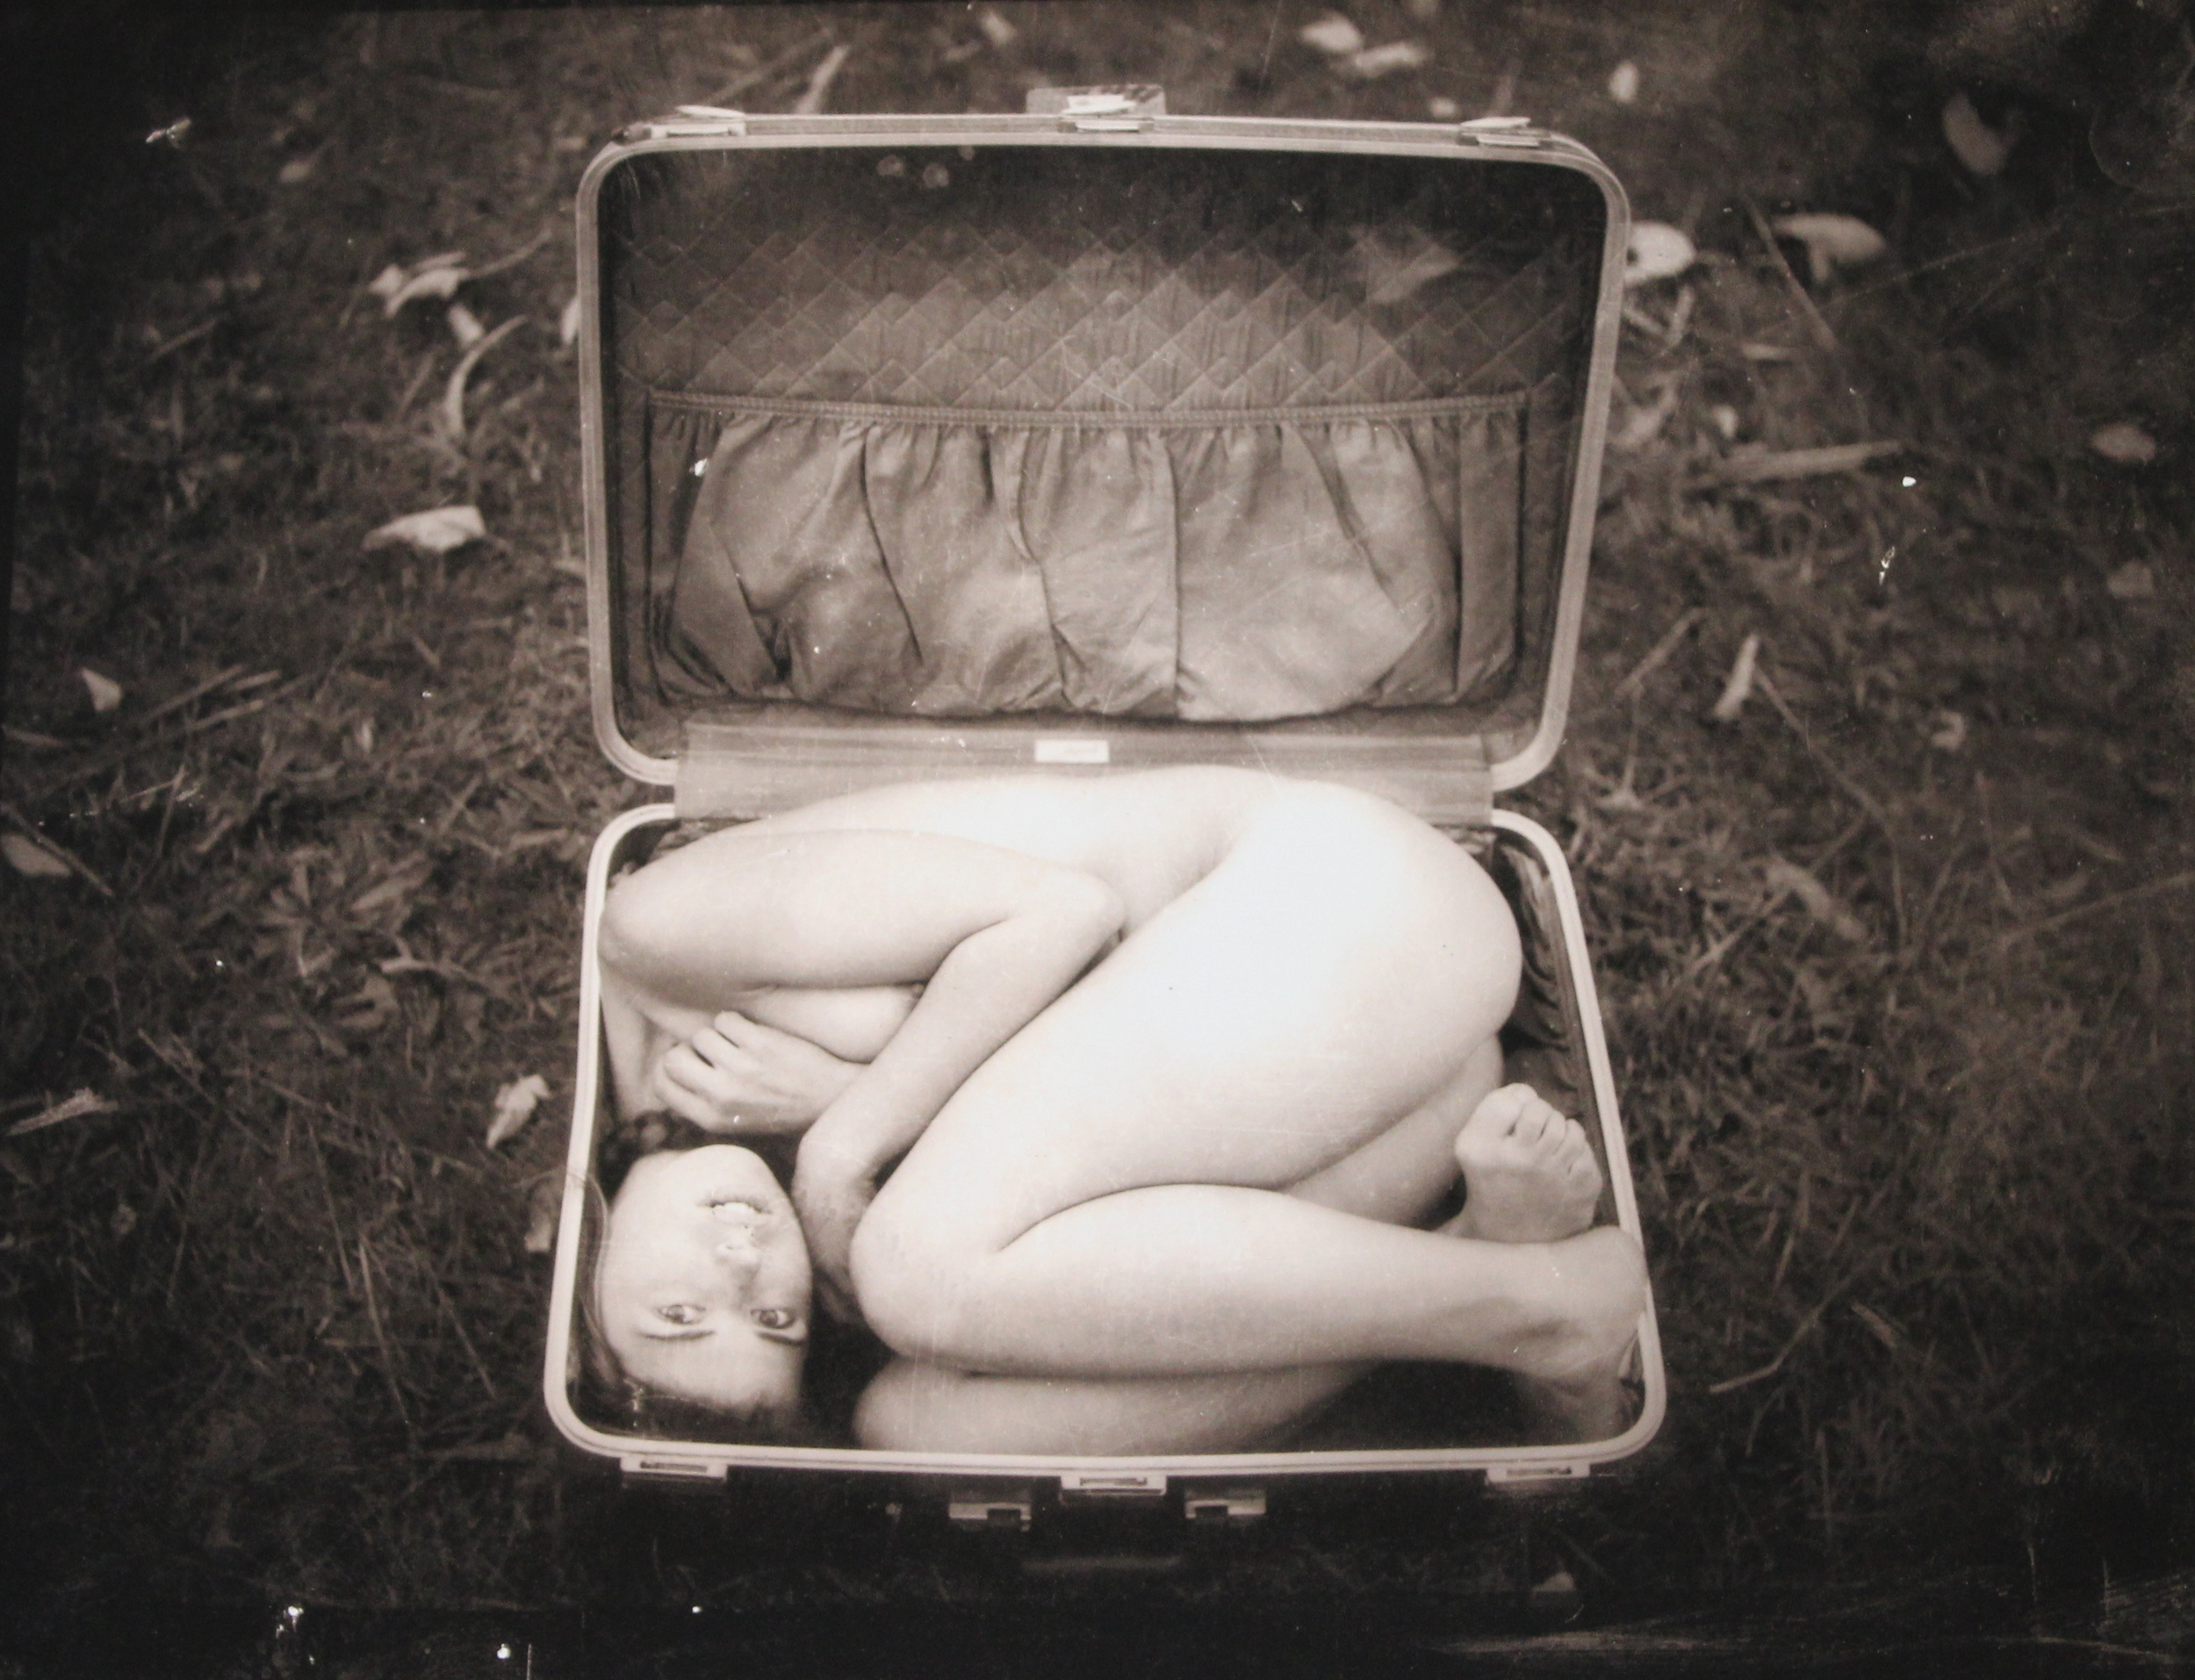 Woman in Suitcase • 20 X 24 • Print (Edition of 35)